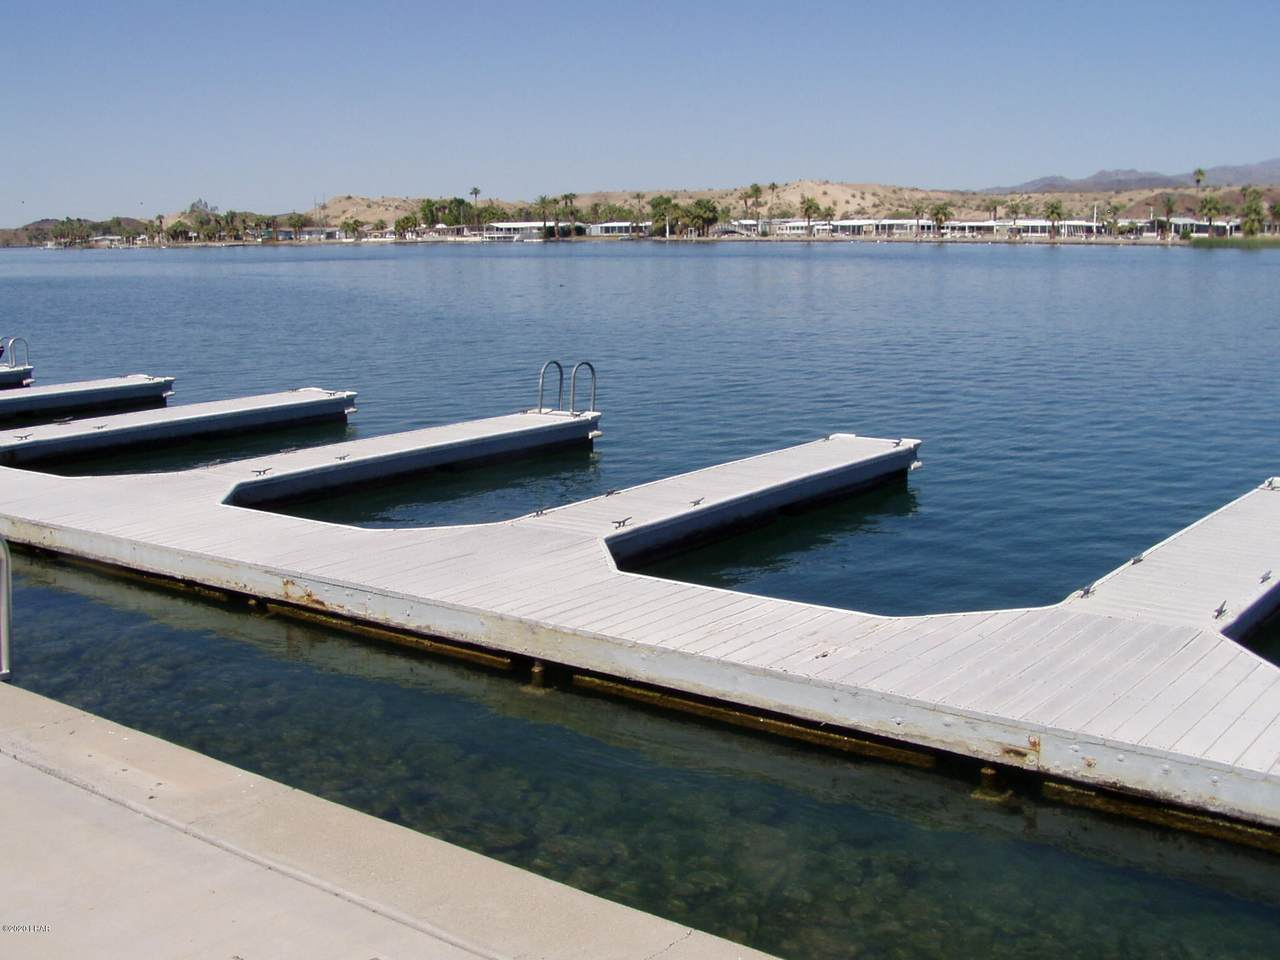 https://bt-photos.global.ssl.fastly.net/lakehavasu/1280_boomver_1_1012297-2.jpg